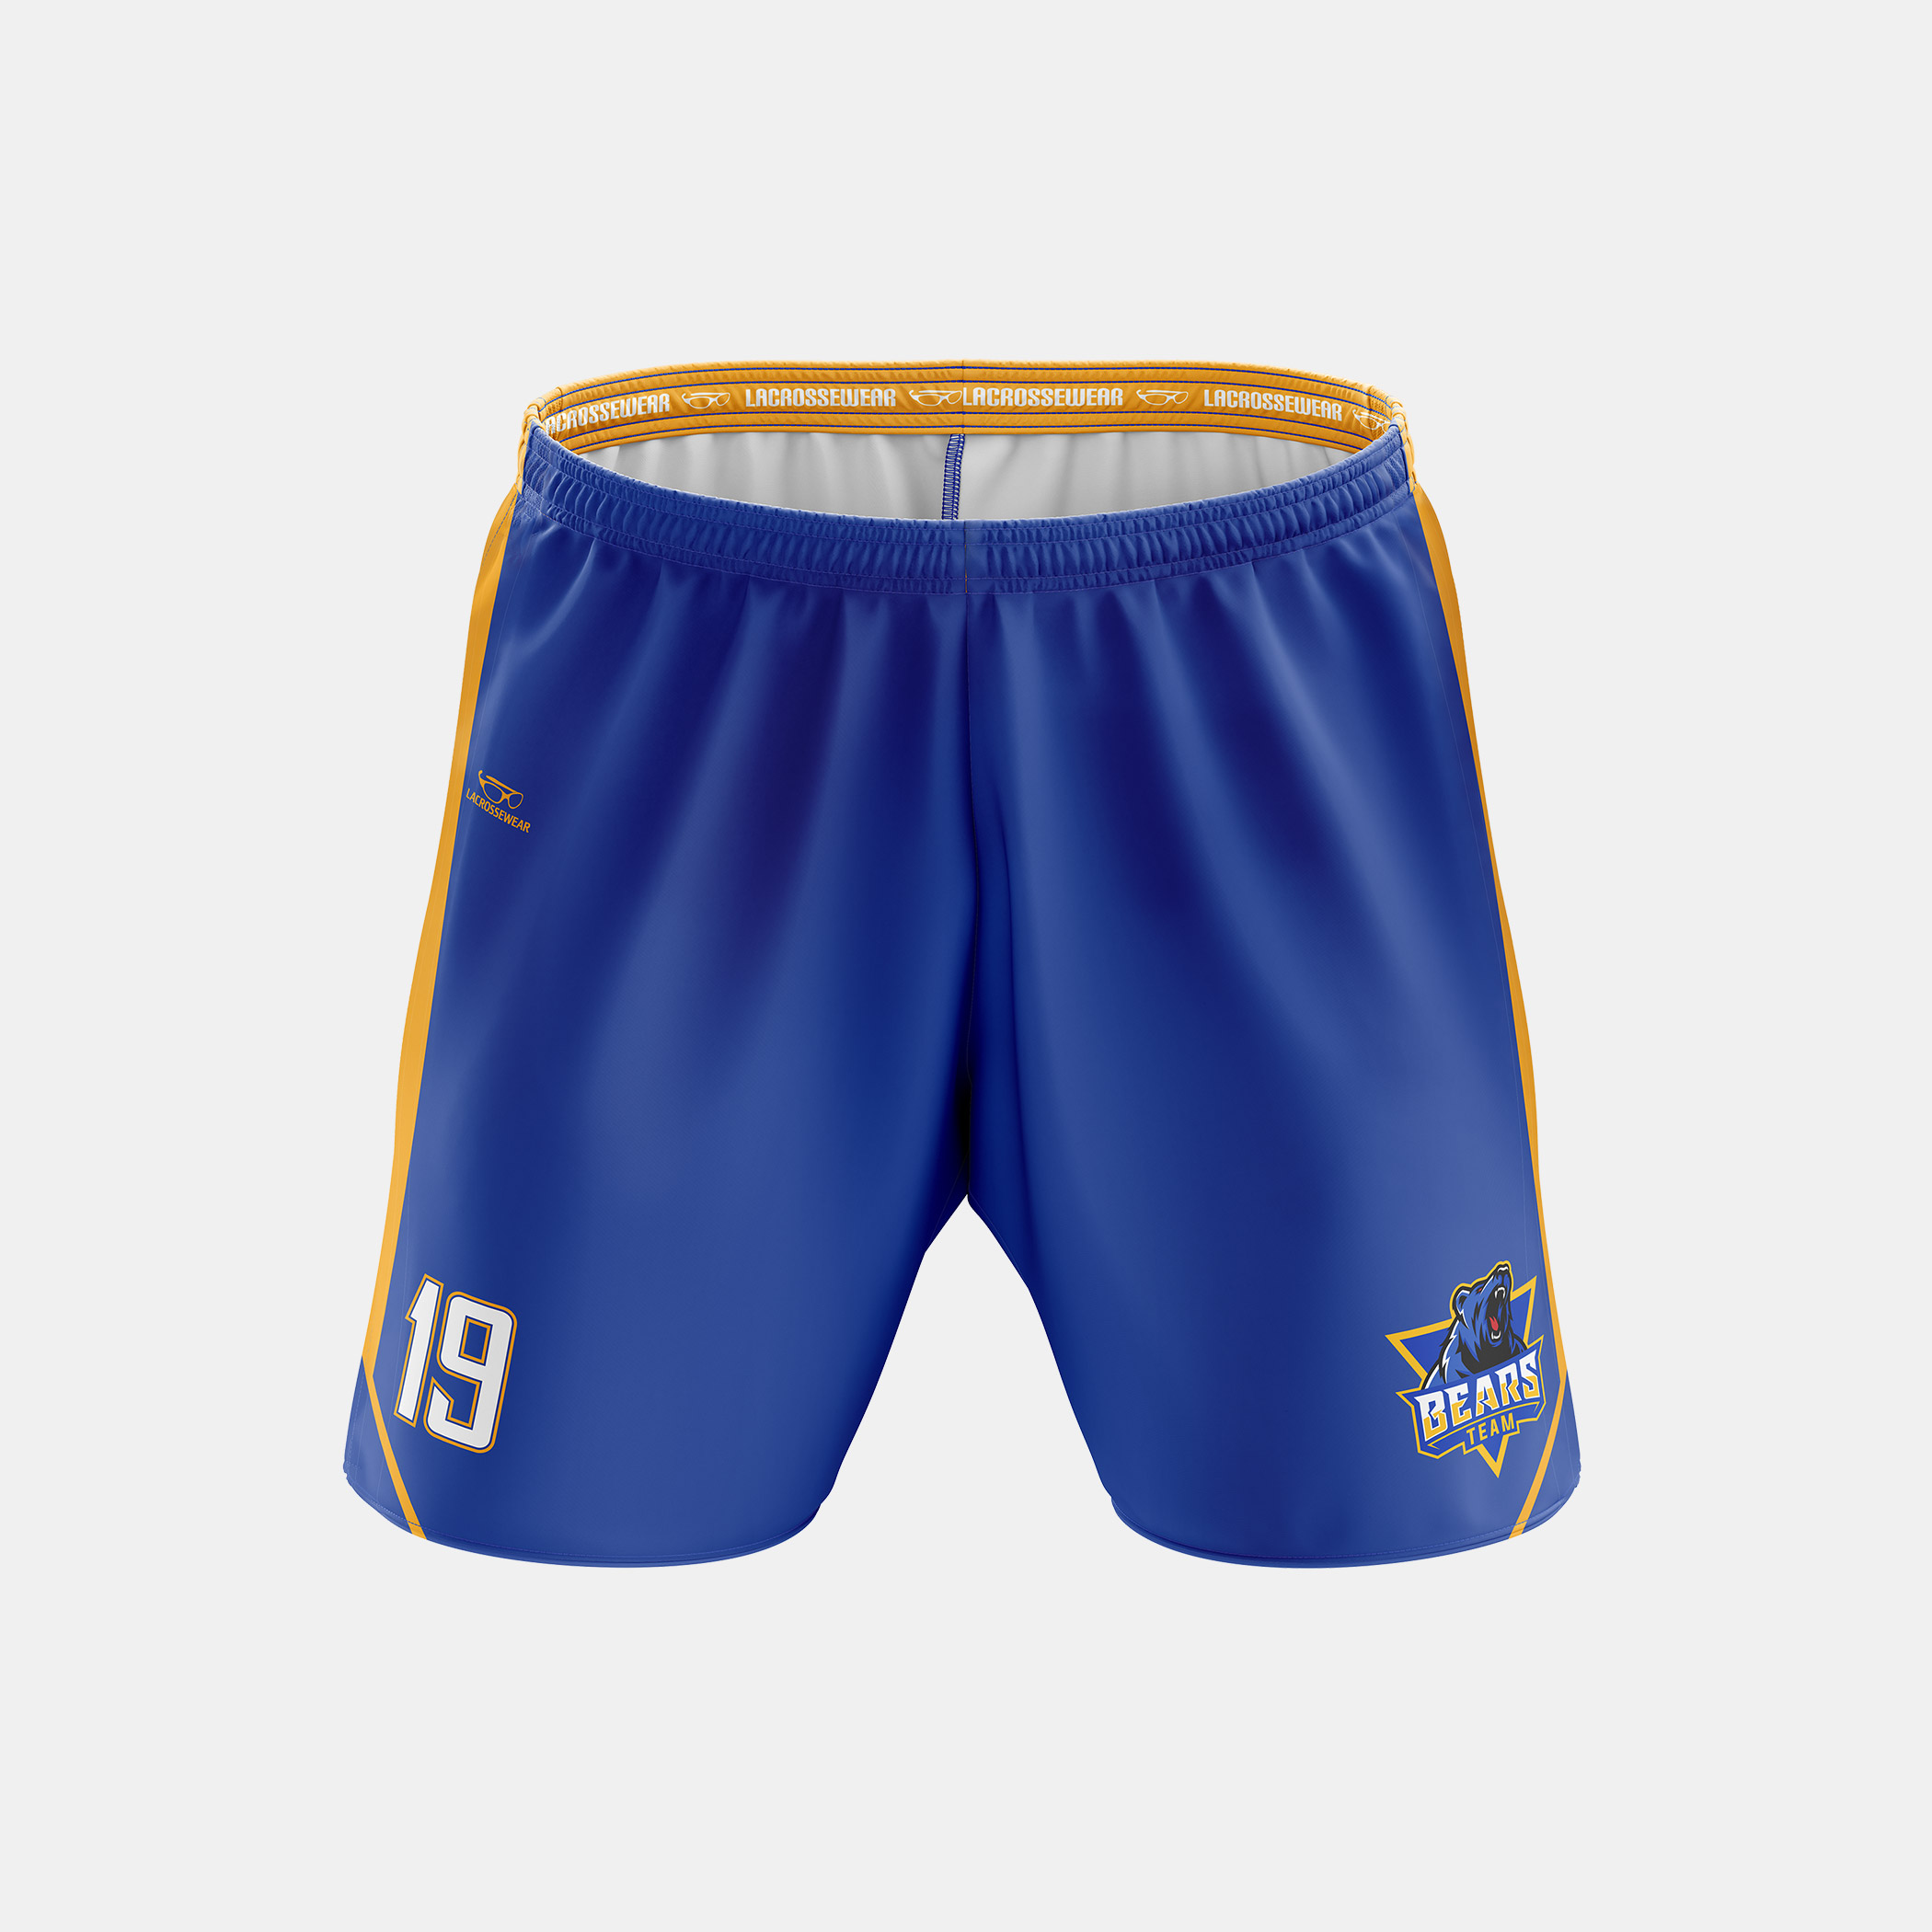 Bears Shorts Front View